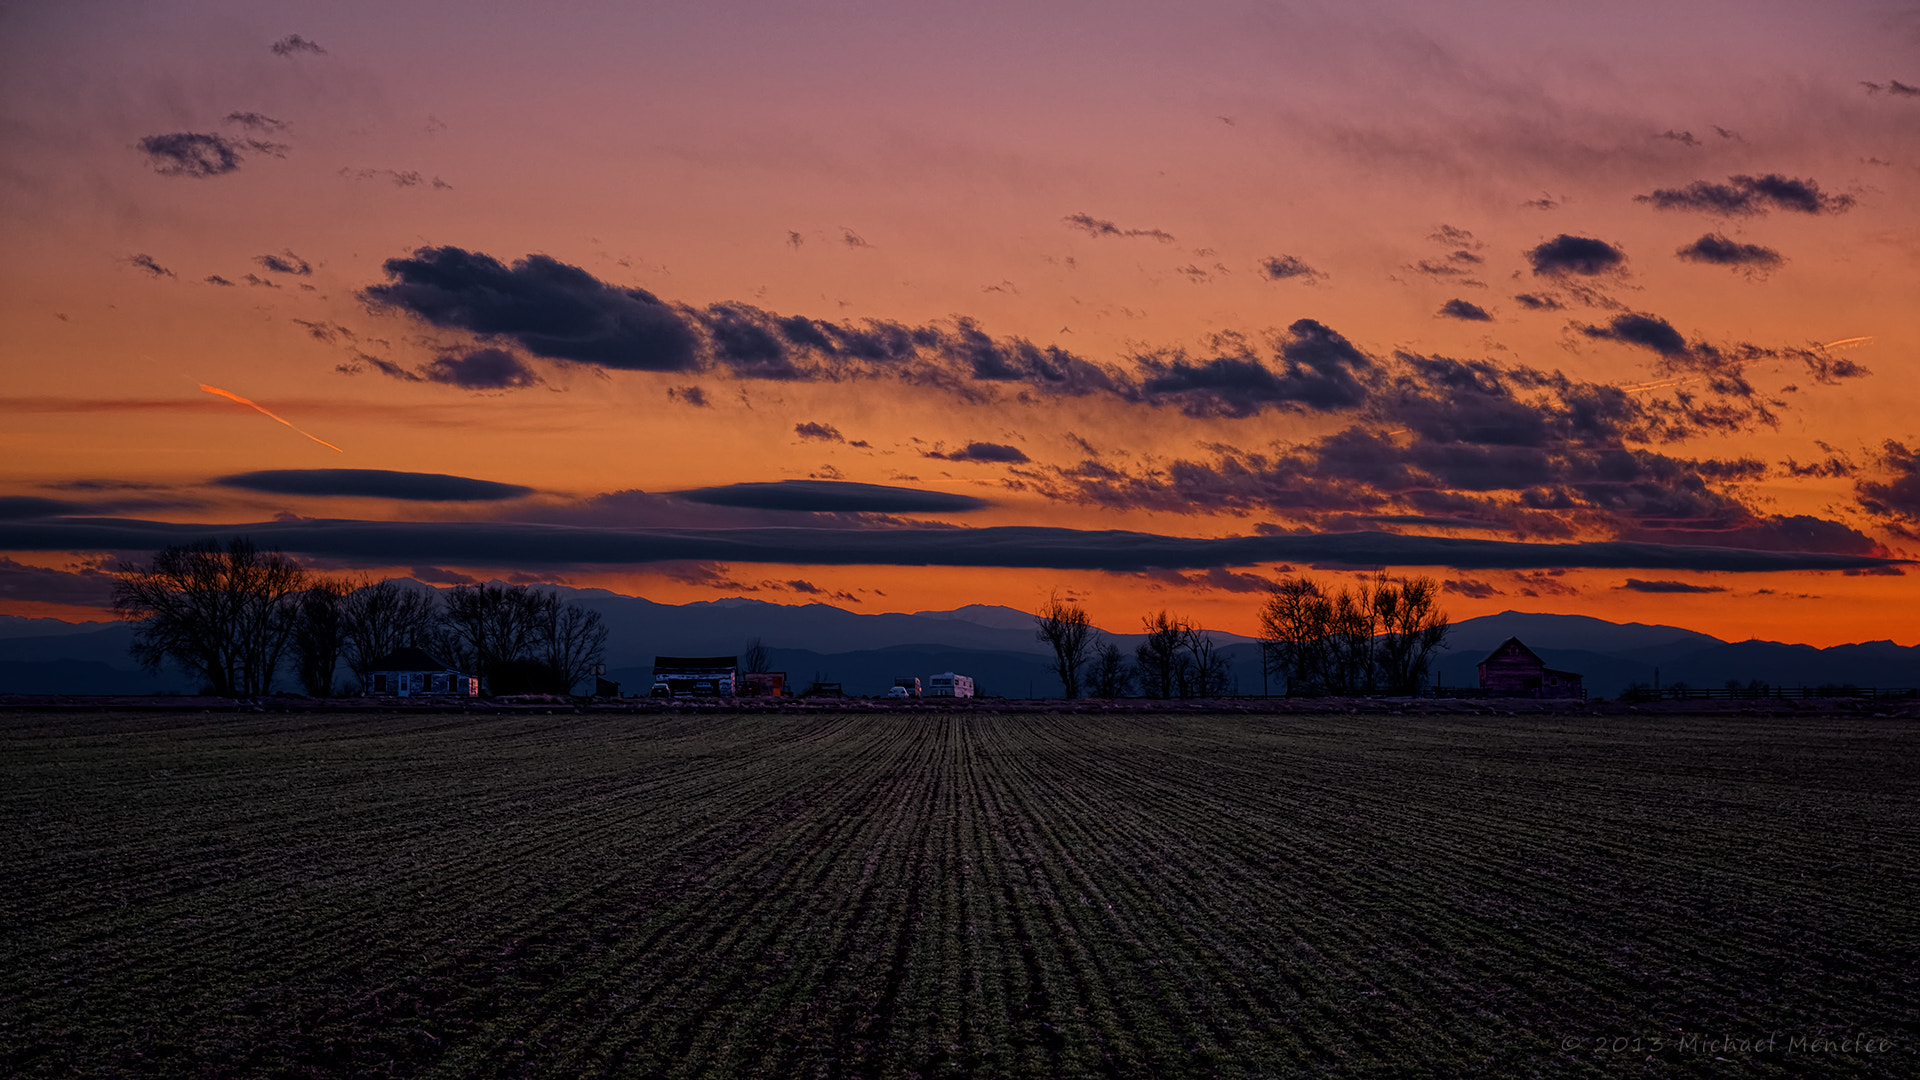 Photograph Early Spring Sunset on a Weld Farm by Michael Menefee on 500px